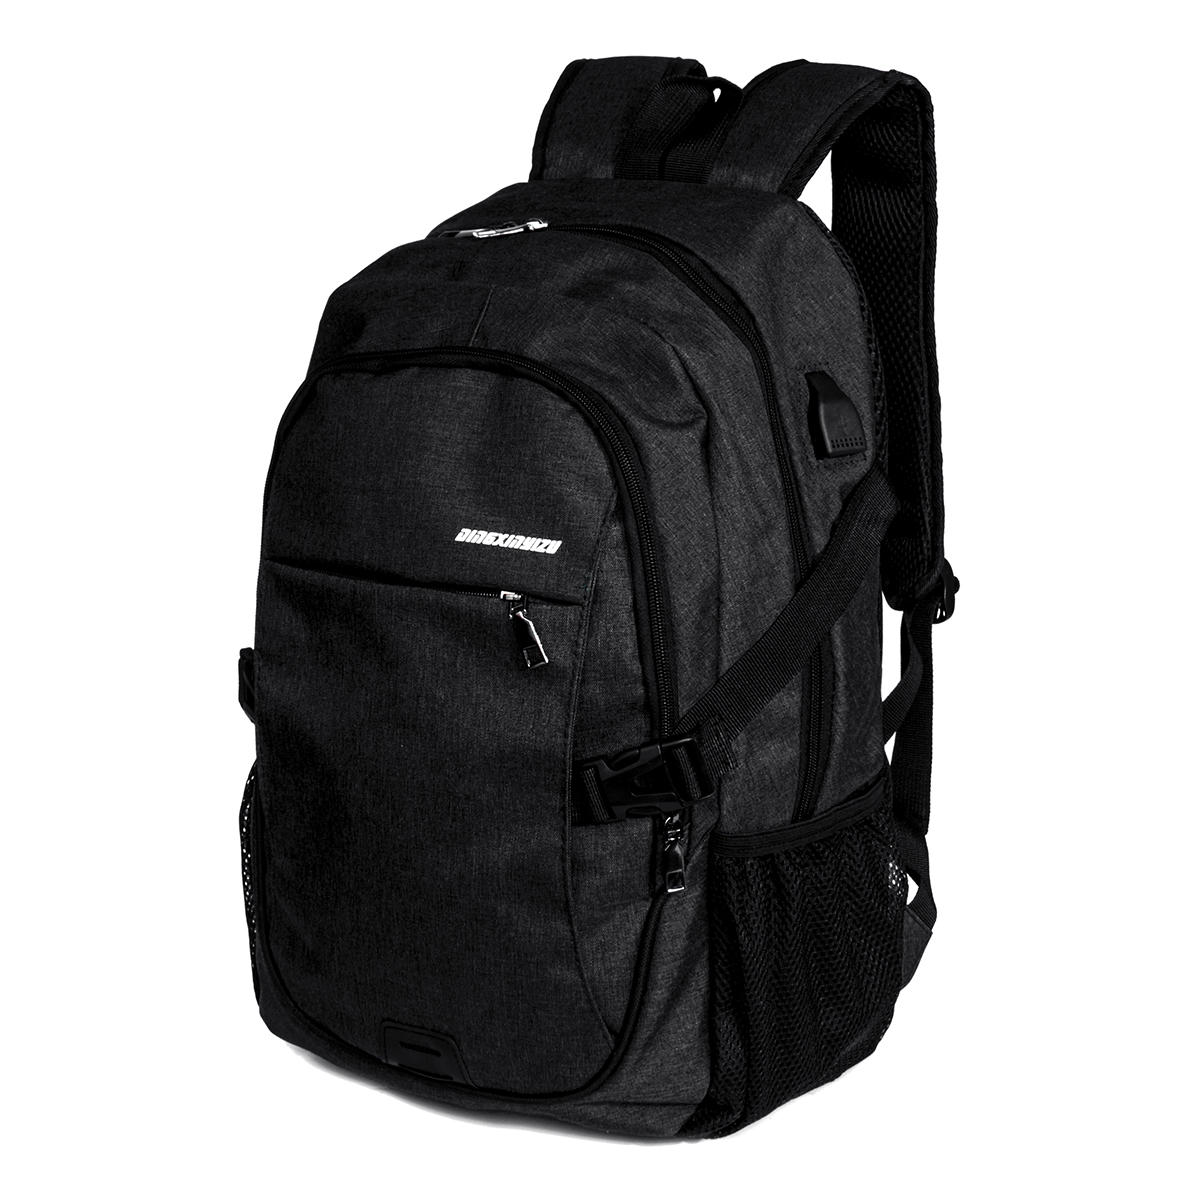 Outdoor Backpack Bag Hiking Camping Mountaineering Casual Backpack Bag Laptop Bag